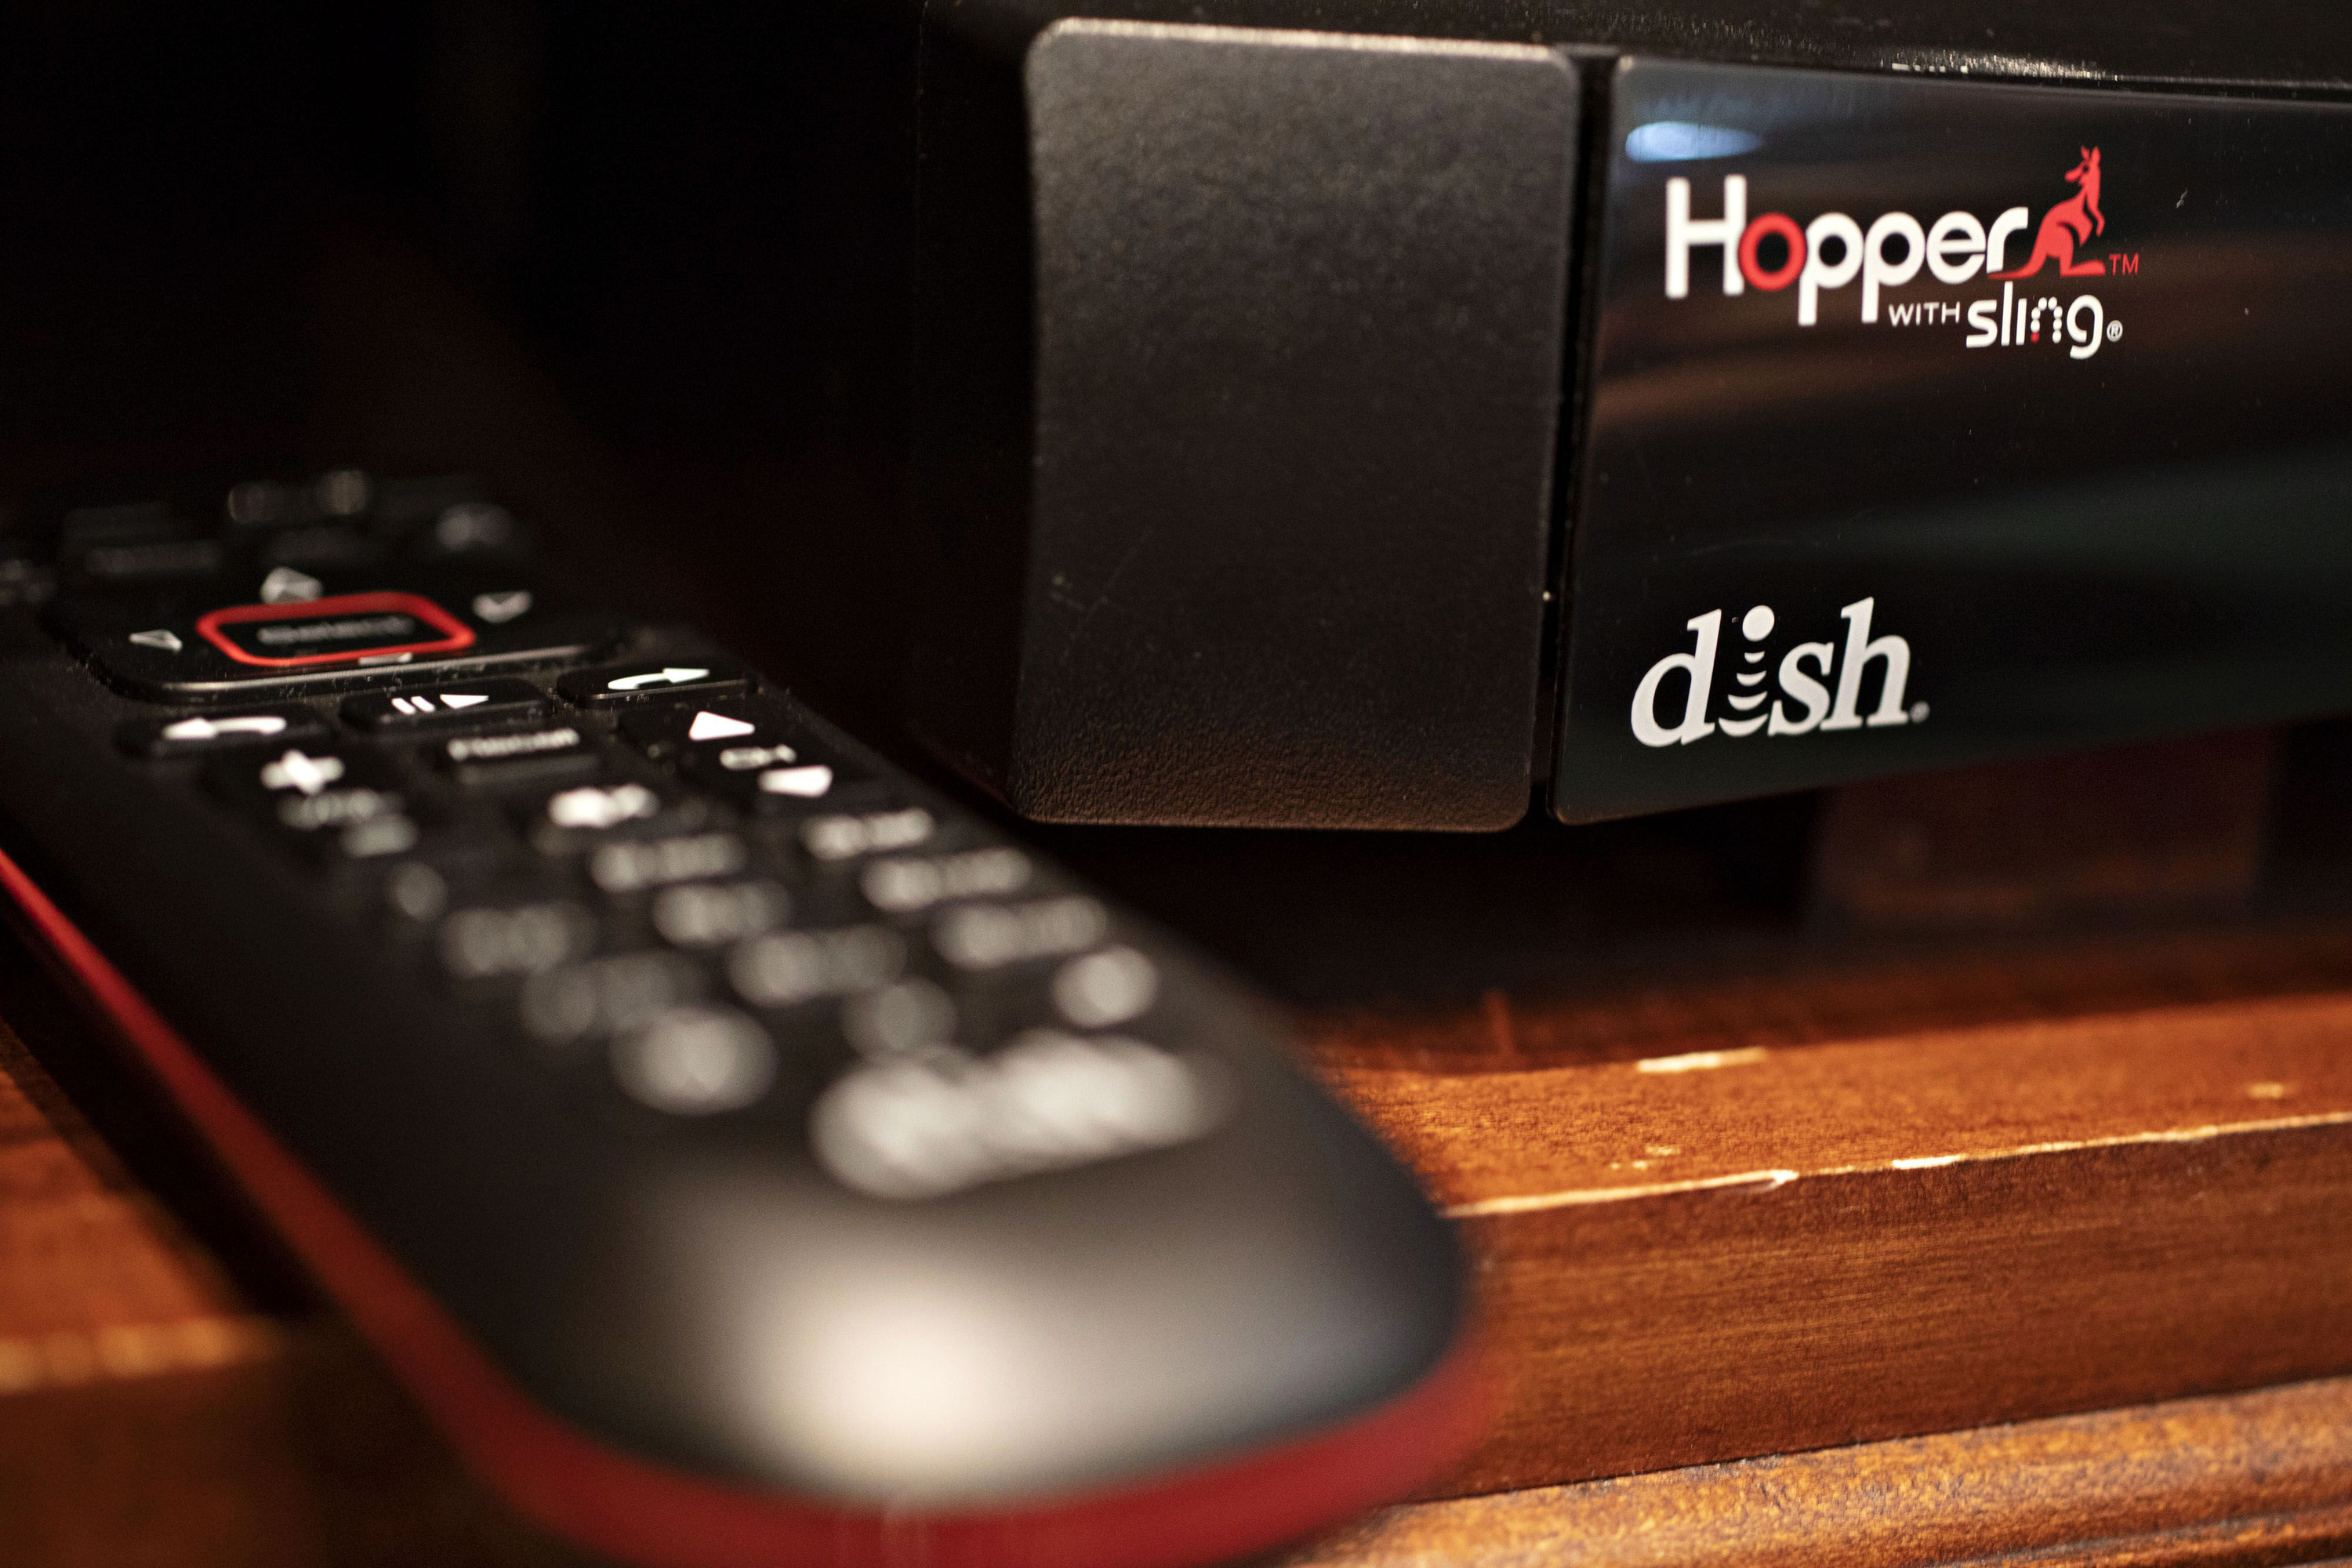 ViacomCBS tests national addressable ads with Dish Media